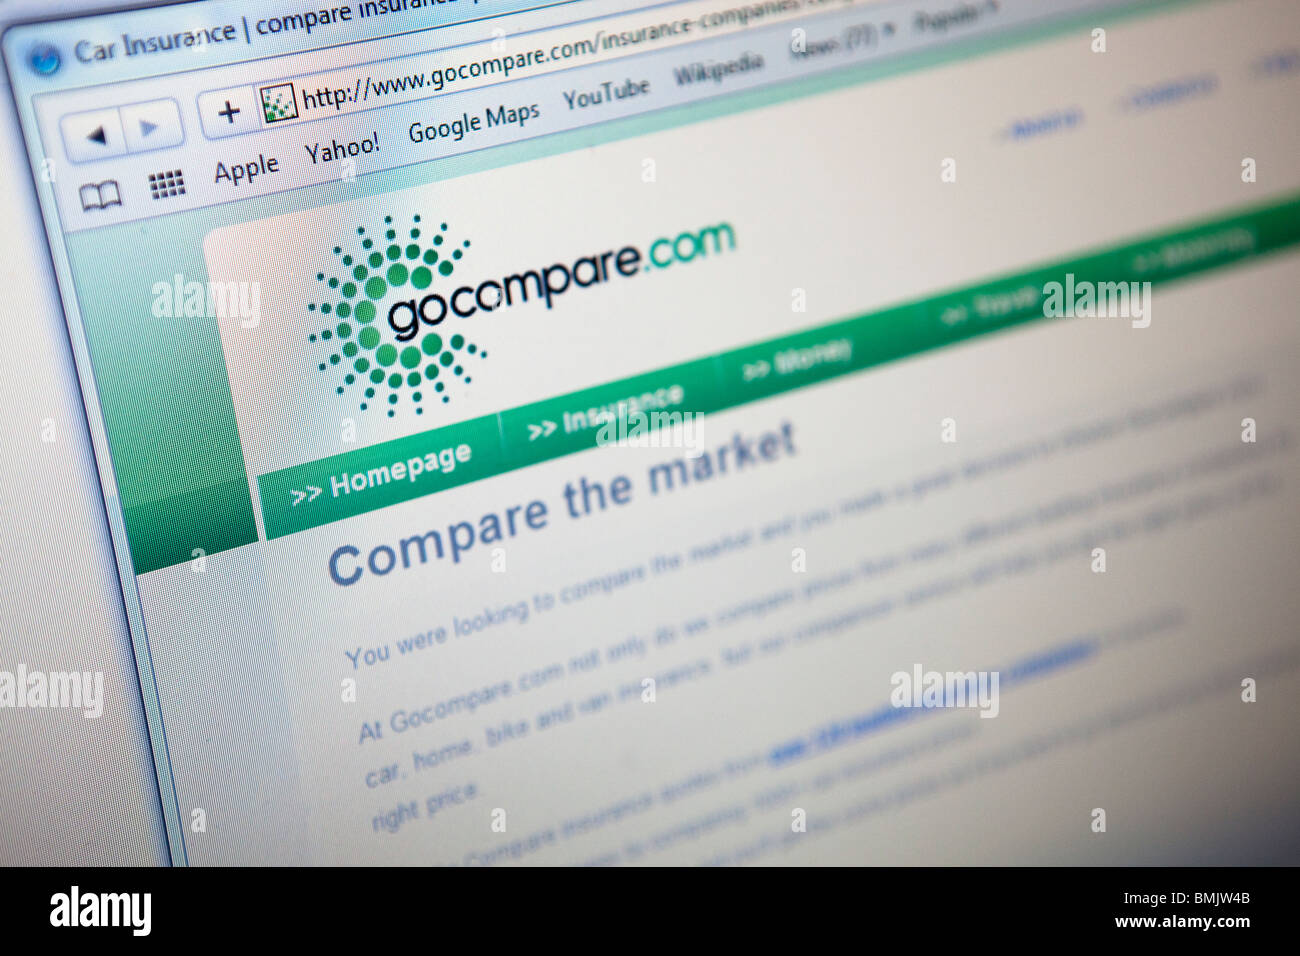 Gocompare Stock Photos Gocompare Stock Images Alamy